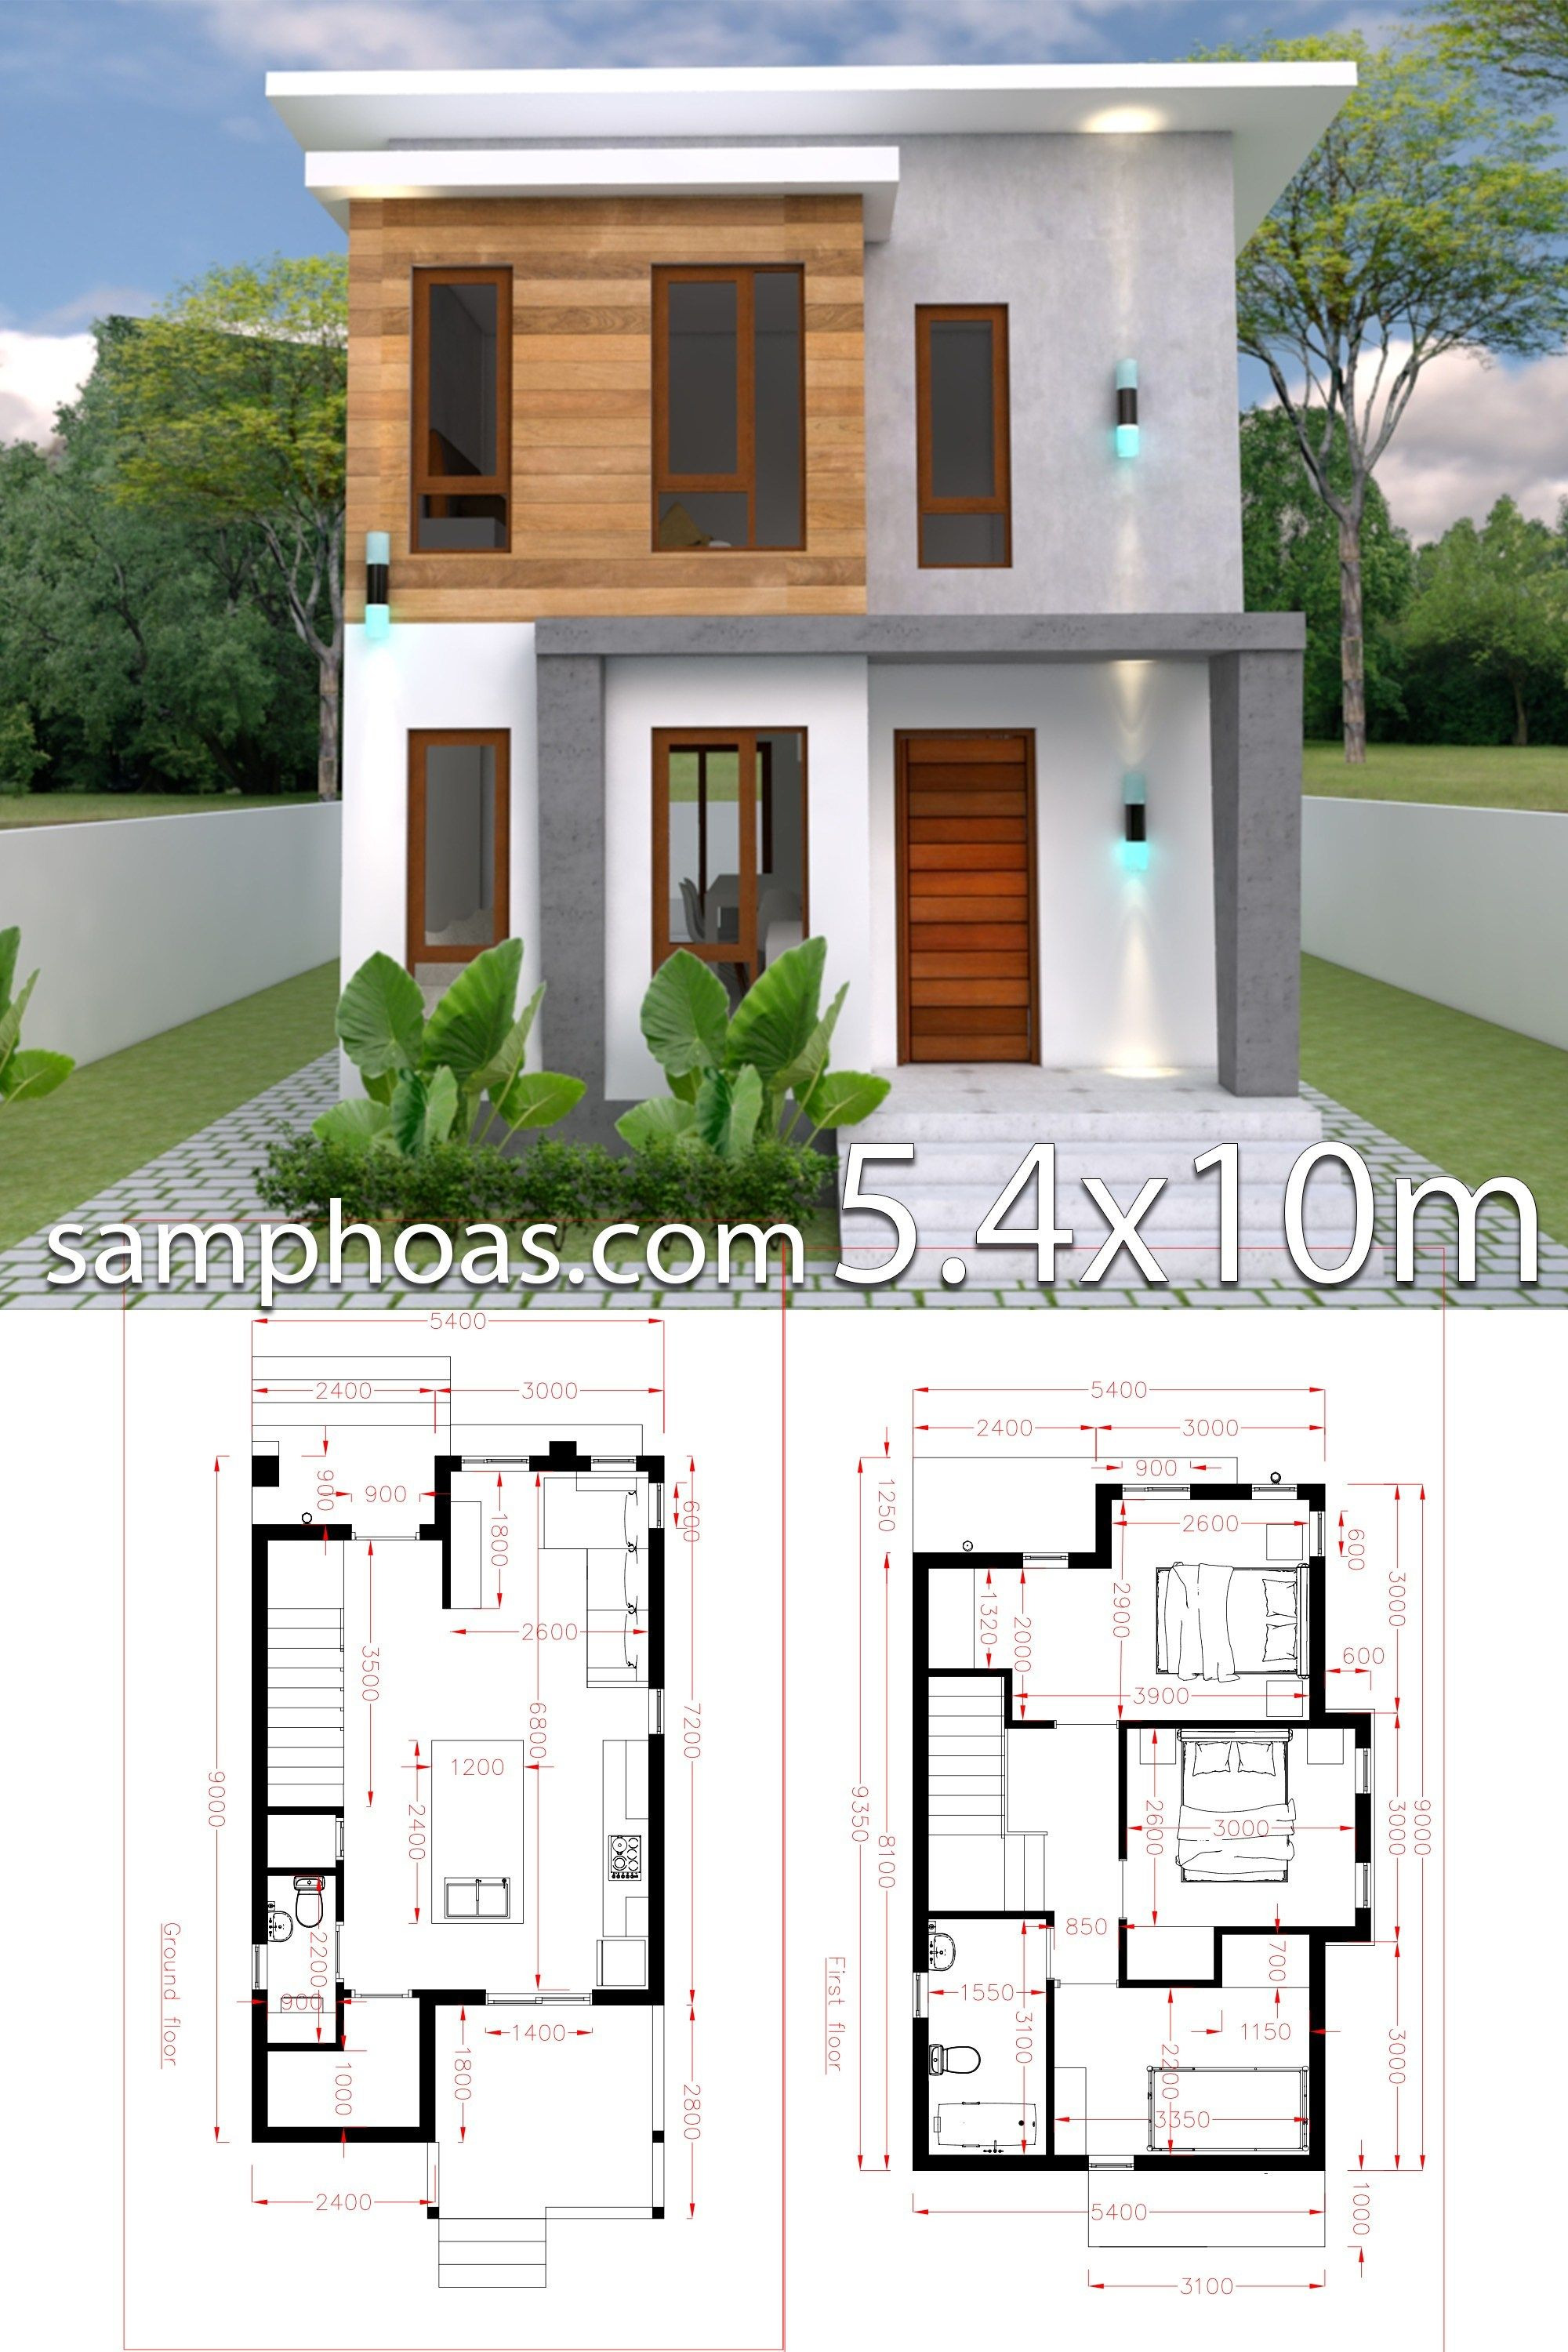 Small Home Models Pictures Best Of Small Home Design Plan 5 4x10m with 3 Bedroom